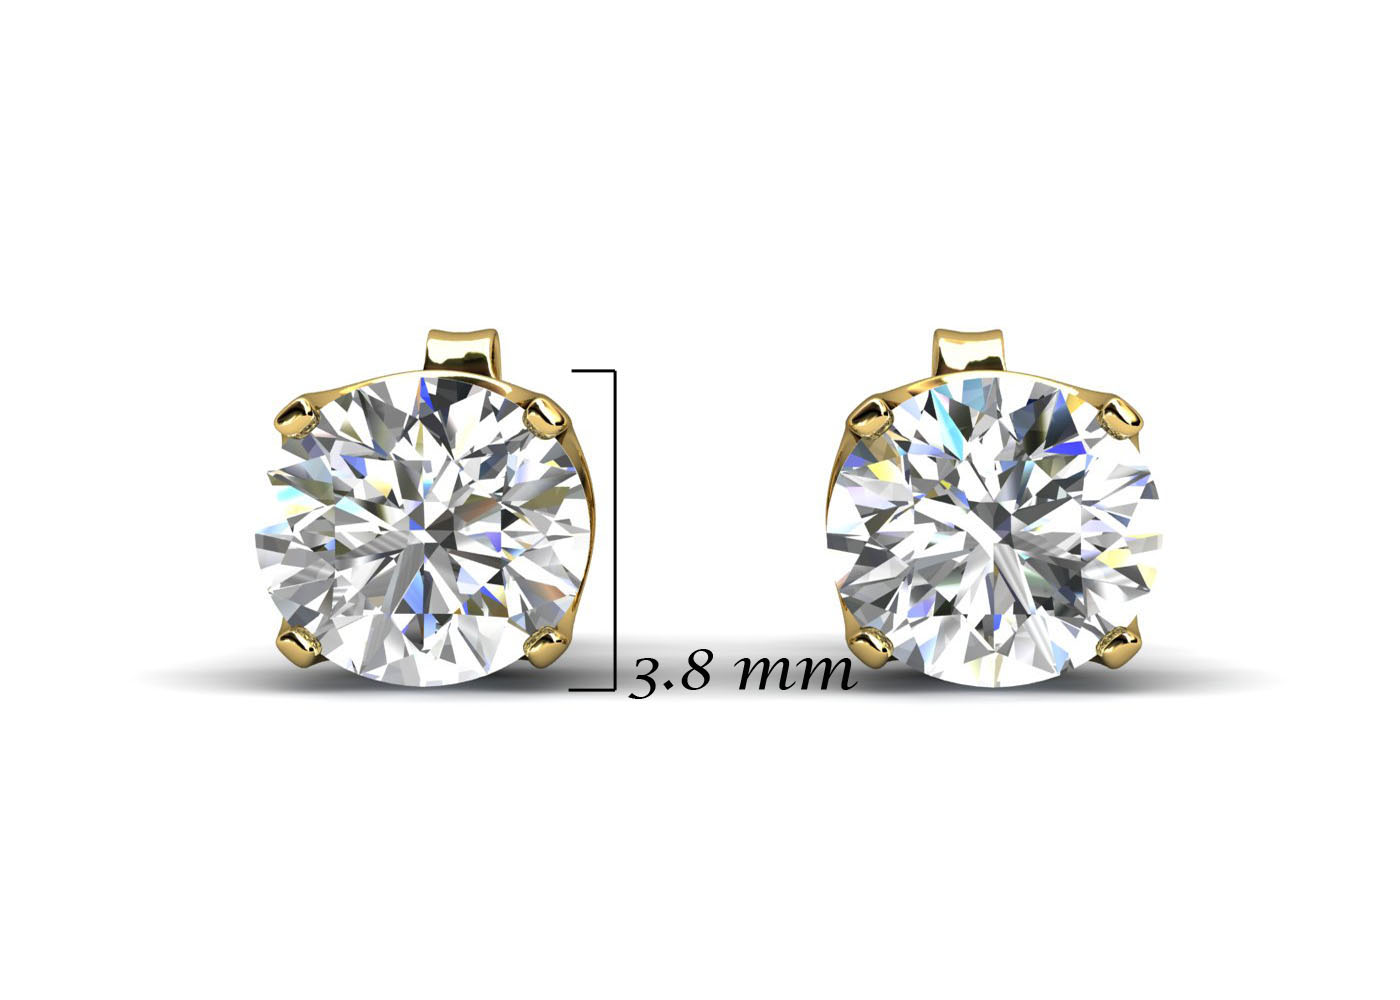 9ct Claw Set Diamond Earrings 0.40 Carats - Image 5 of 9